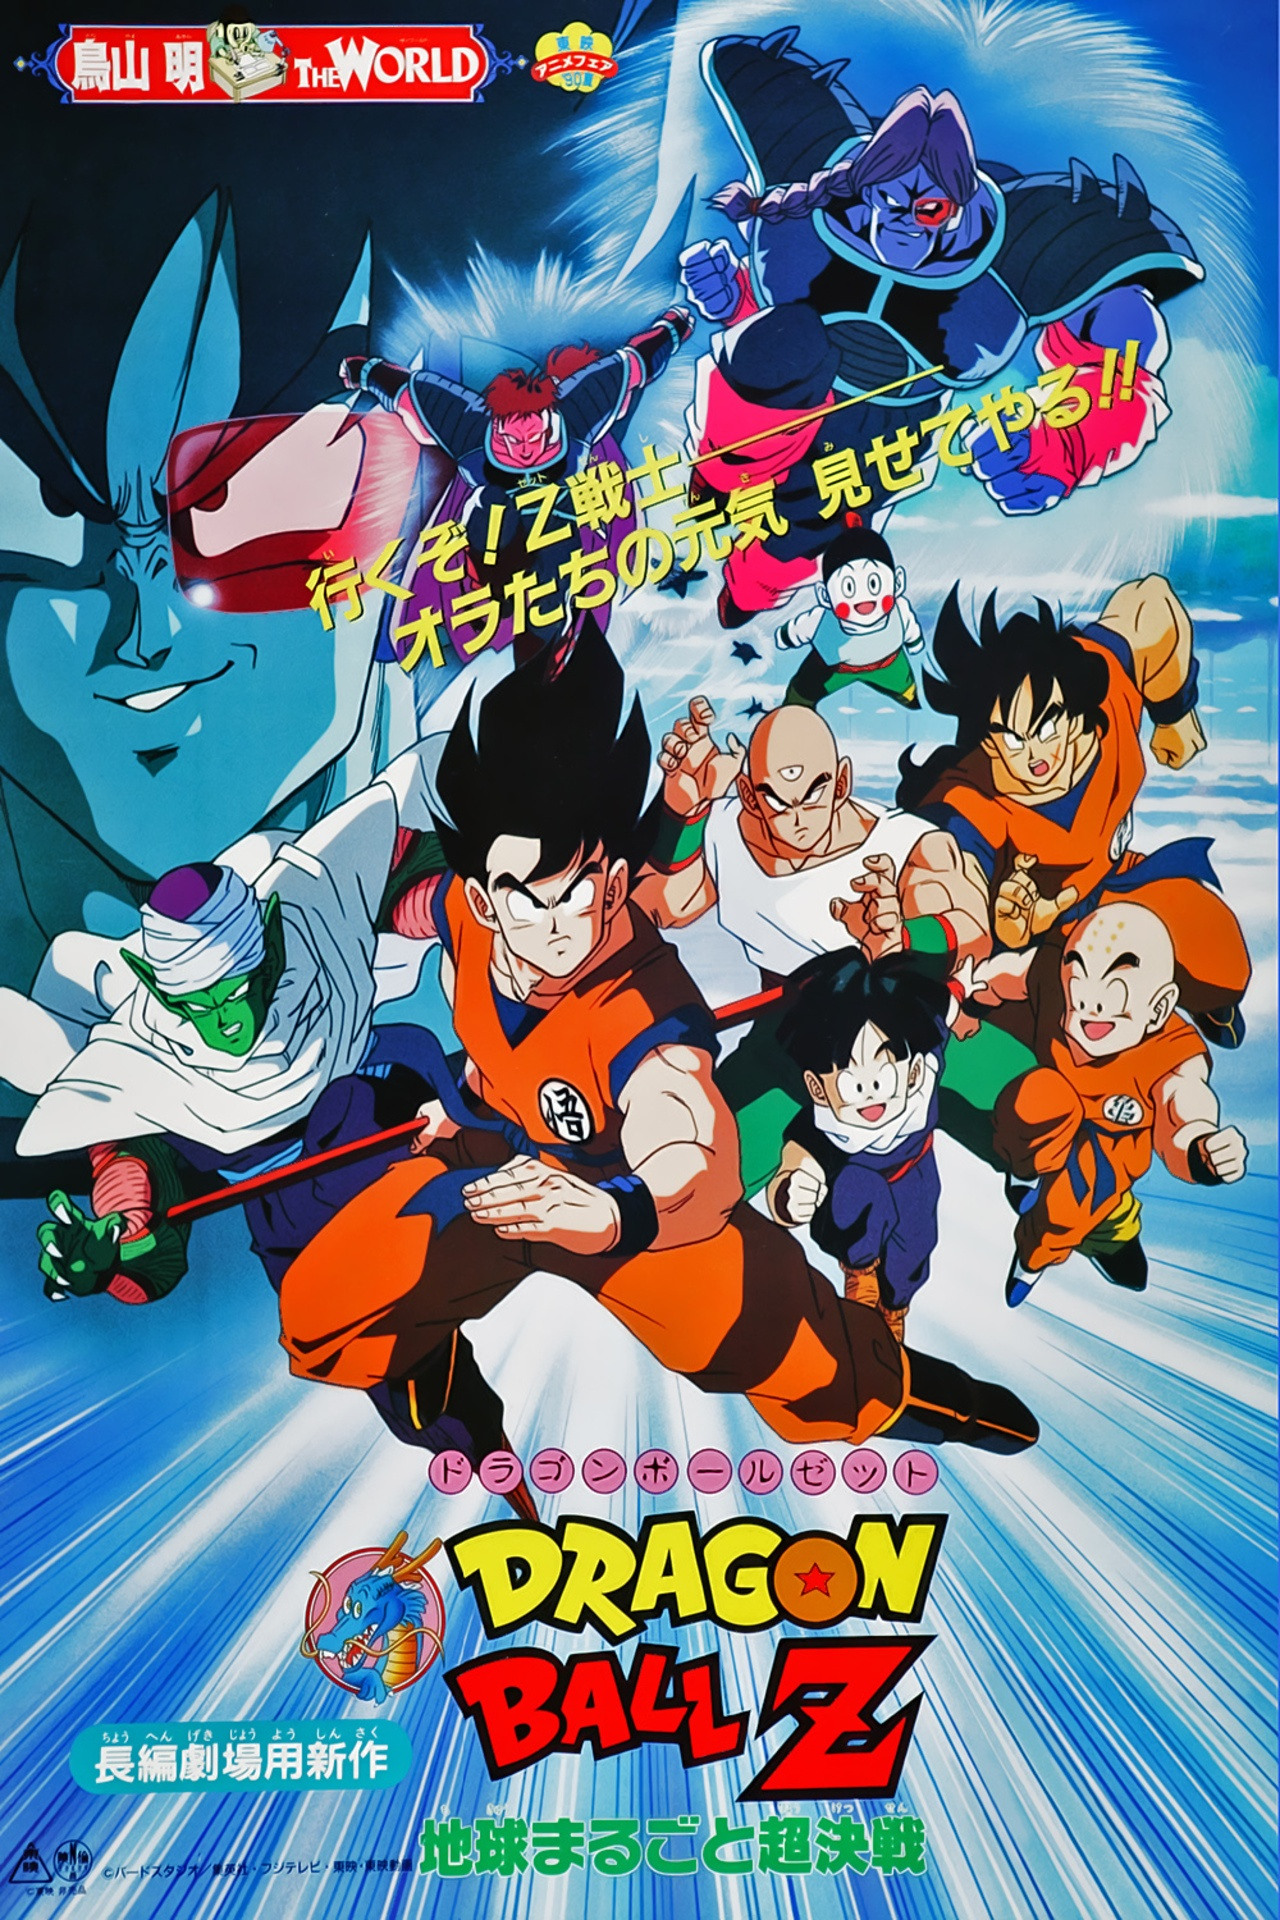 Dragon Ball Z: Super Battle in the World kapak